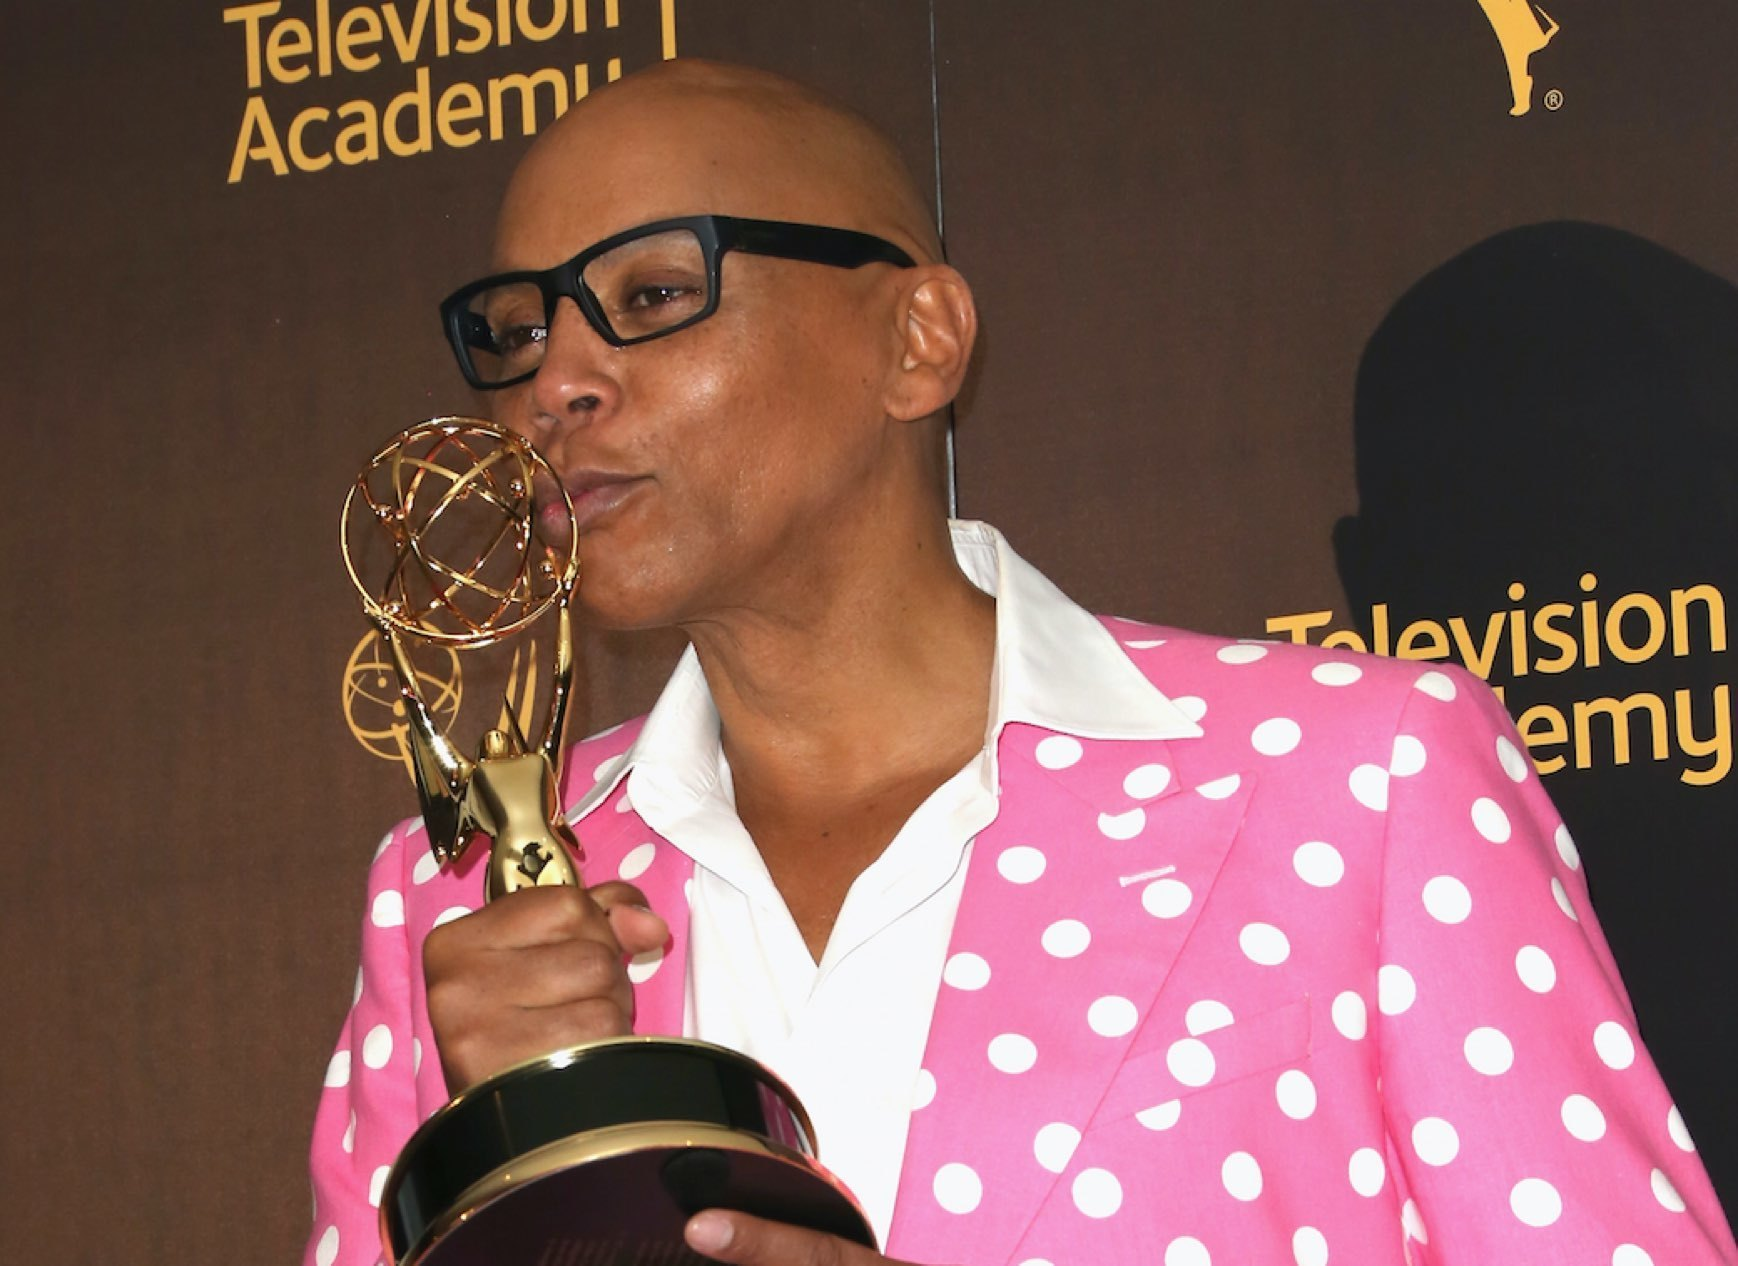 la-et-hc-tv-personality-rupaul-charles-winner-of-outstanding-host-for-a-reality-or-reality-competition-progra-20160918